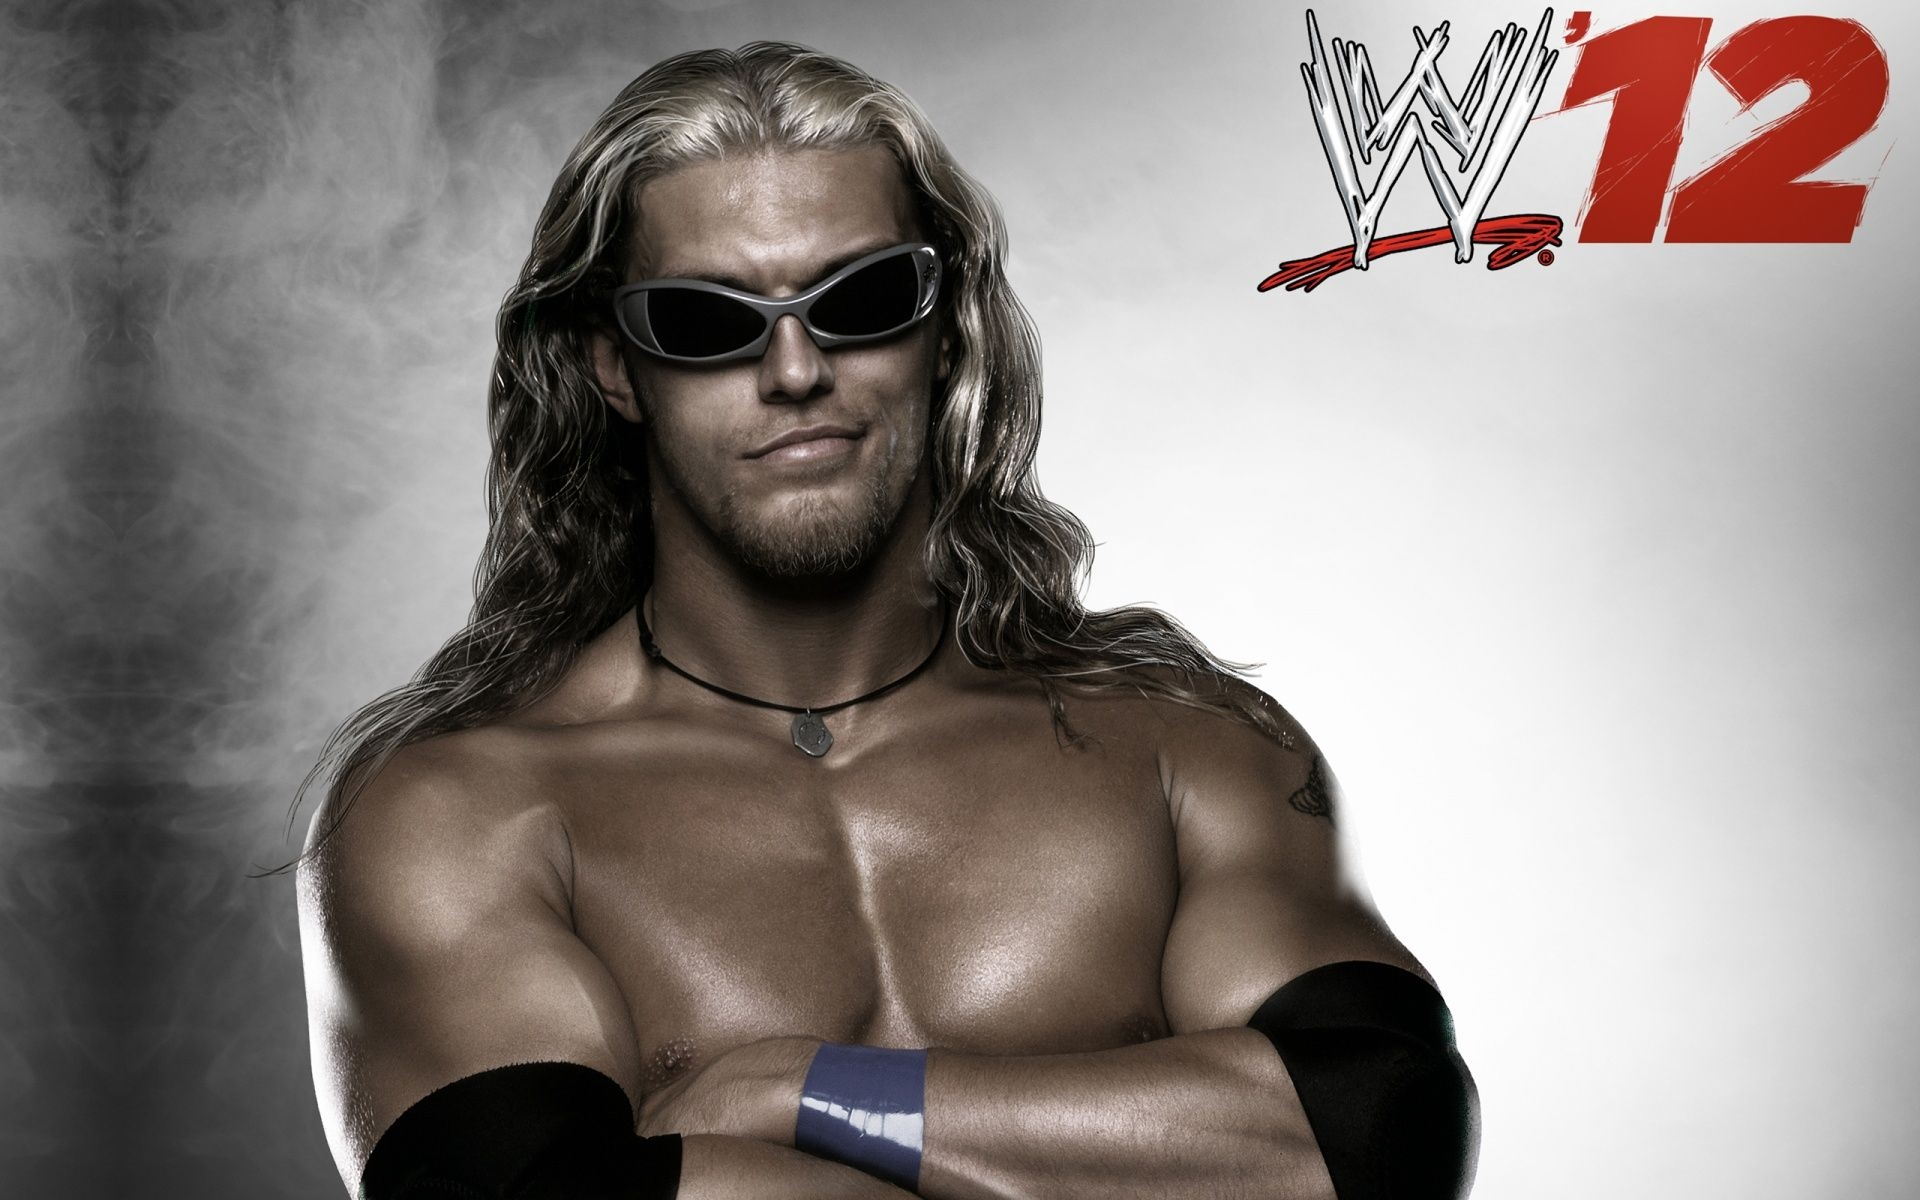 wwe wrestler edge hd wallpaper